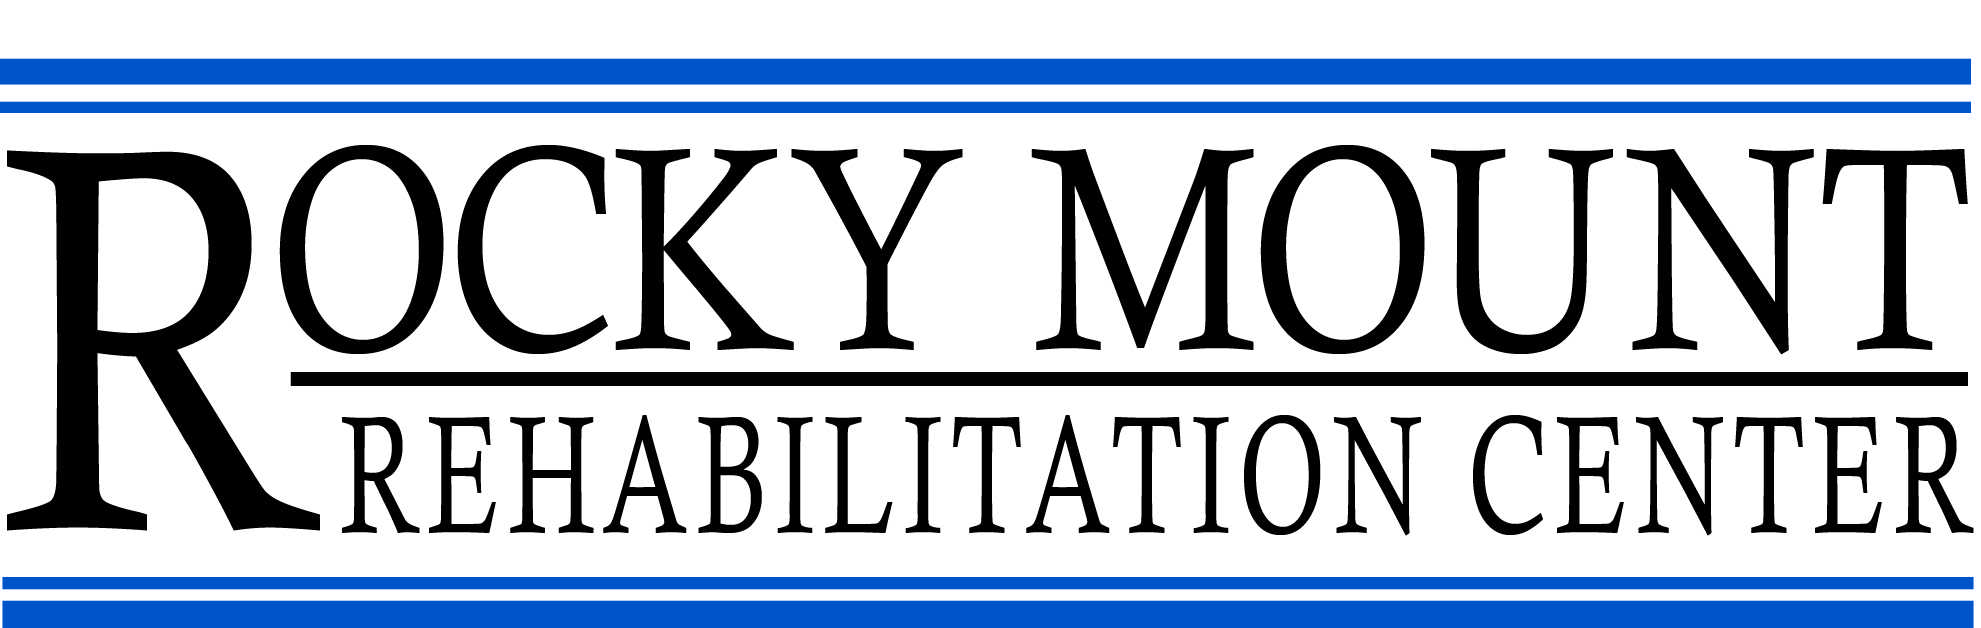 Rocky Mount Rehabilitation Center